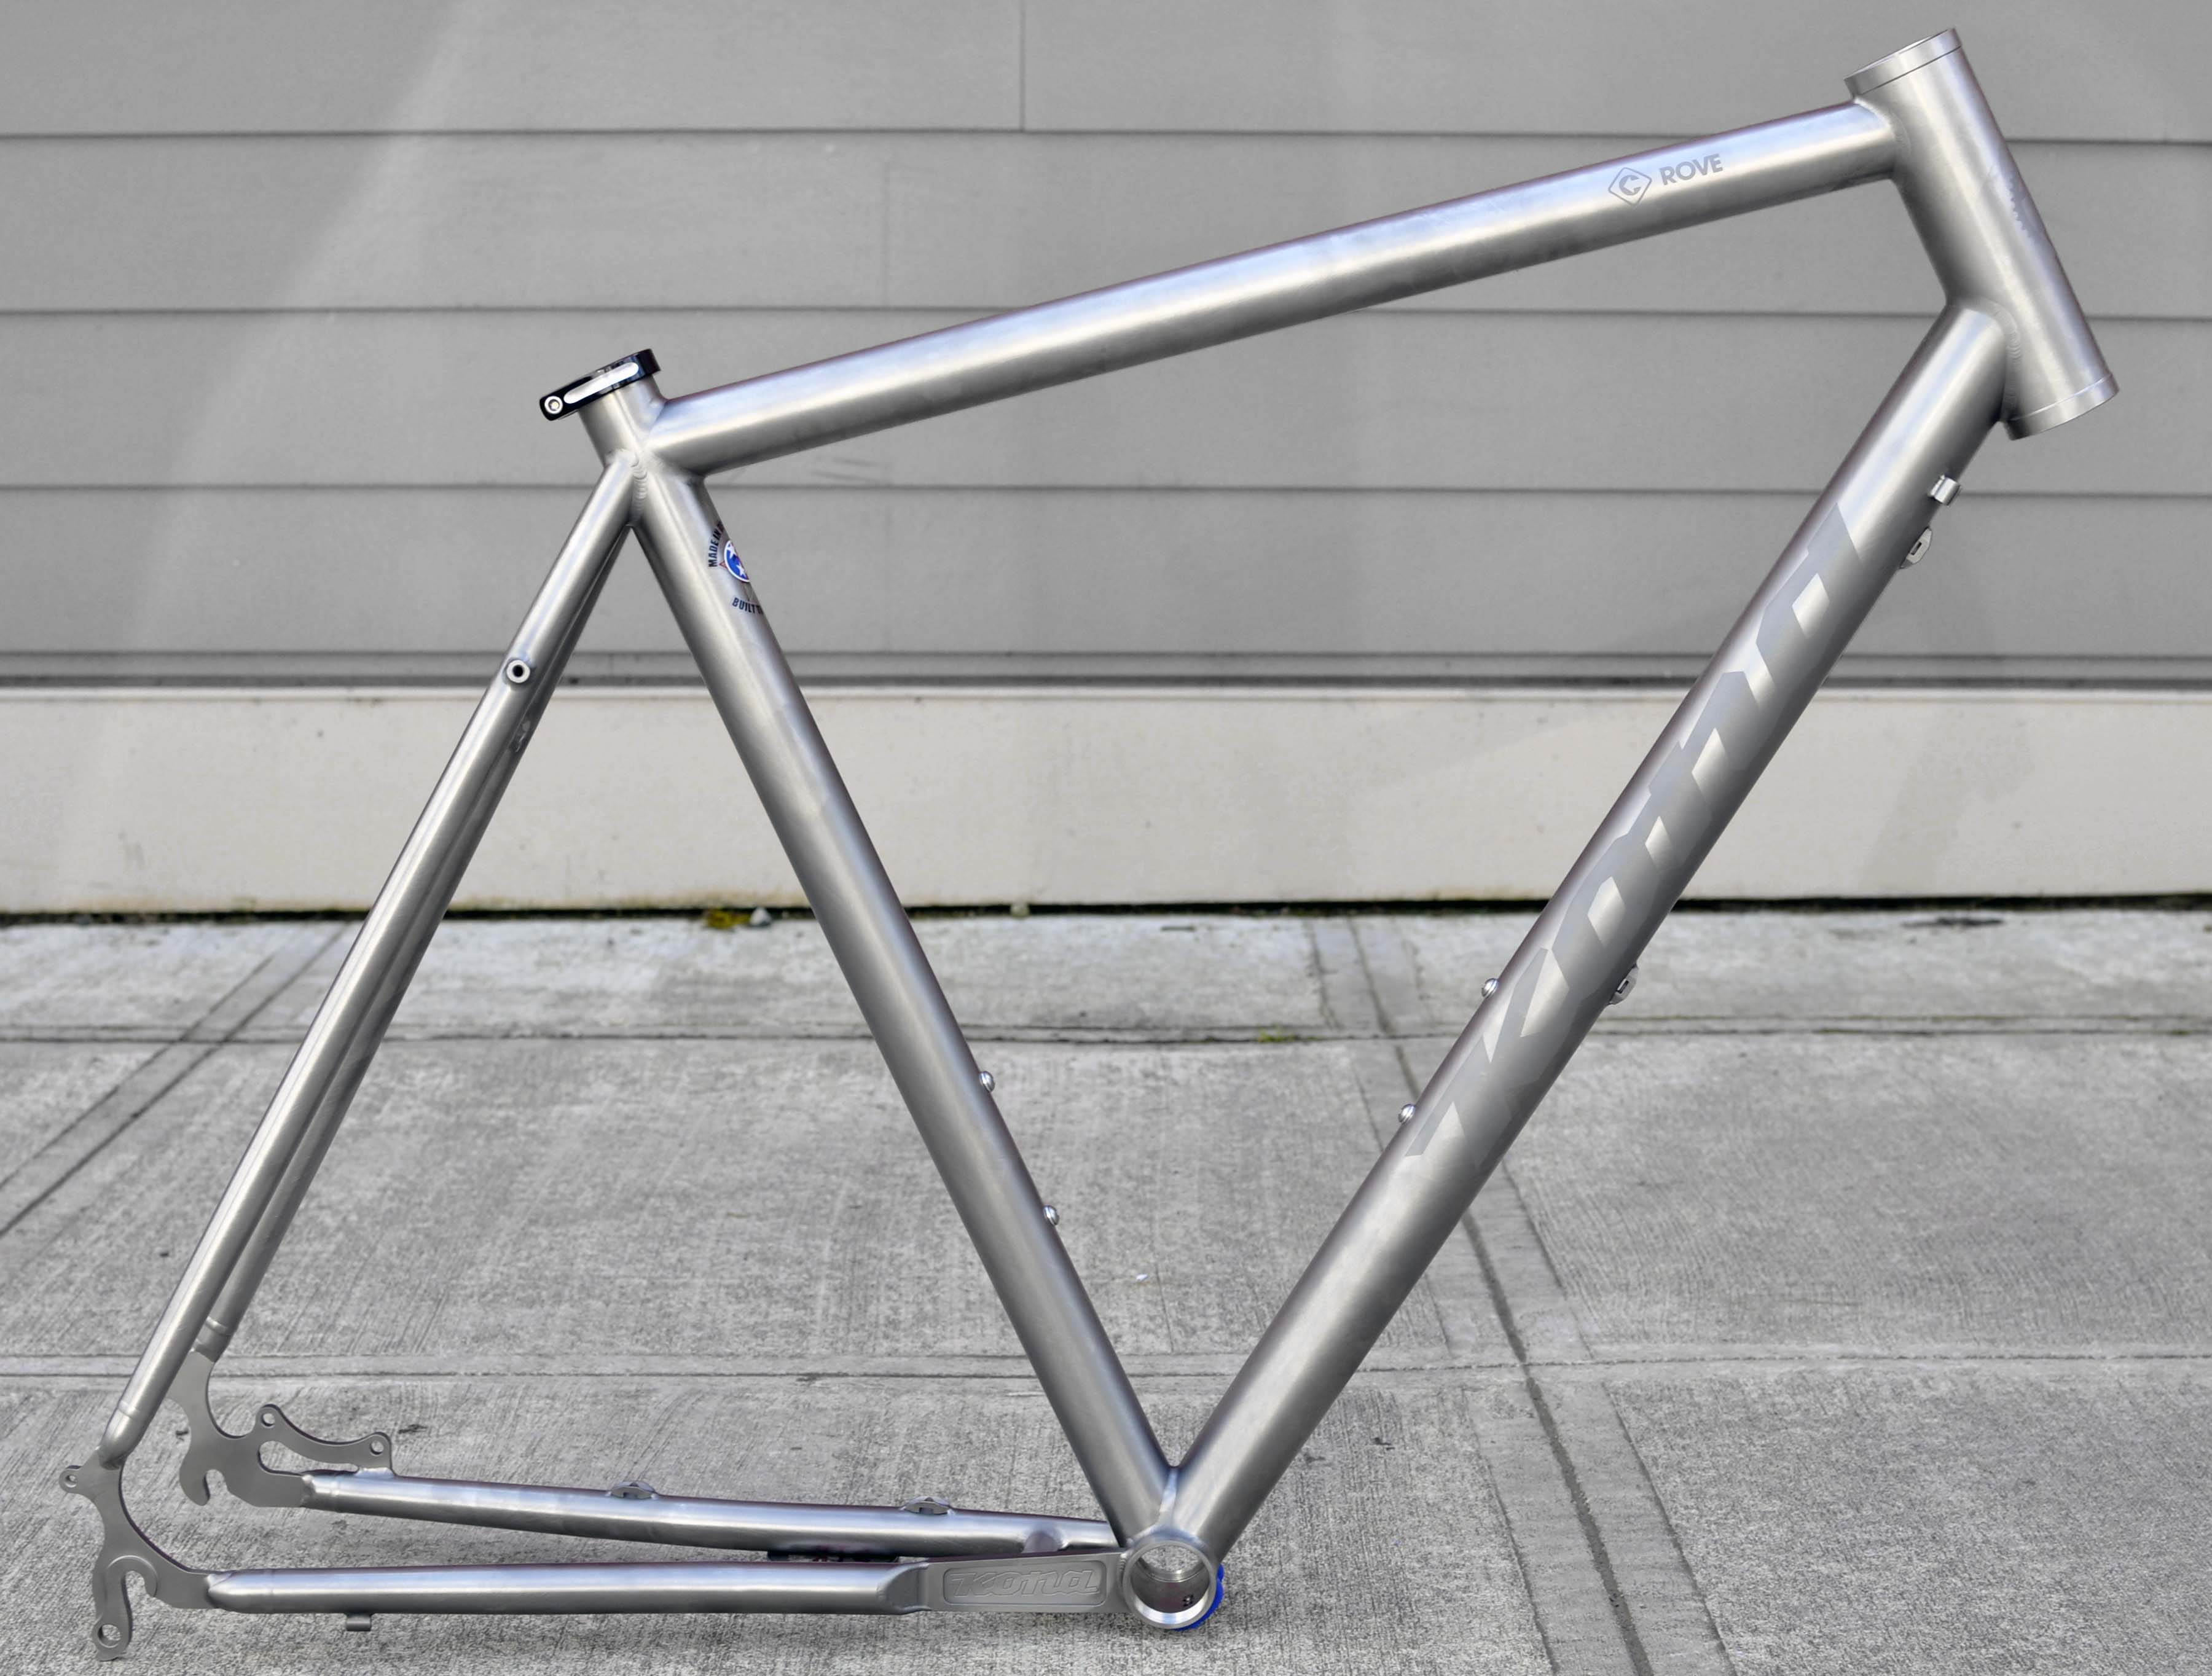 3a9c5195c01 One Bike to Rule Them All: Details of Kona's Ti Rove Frame